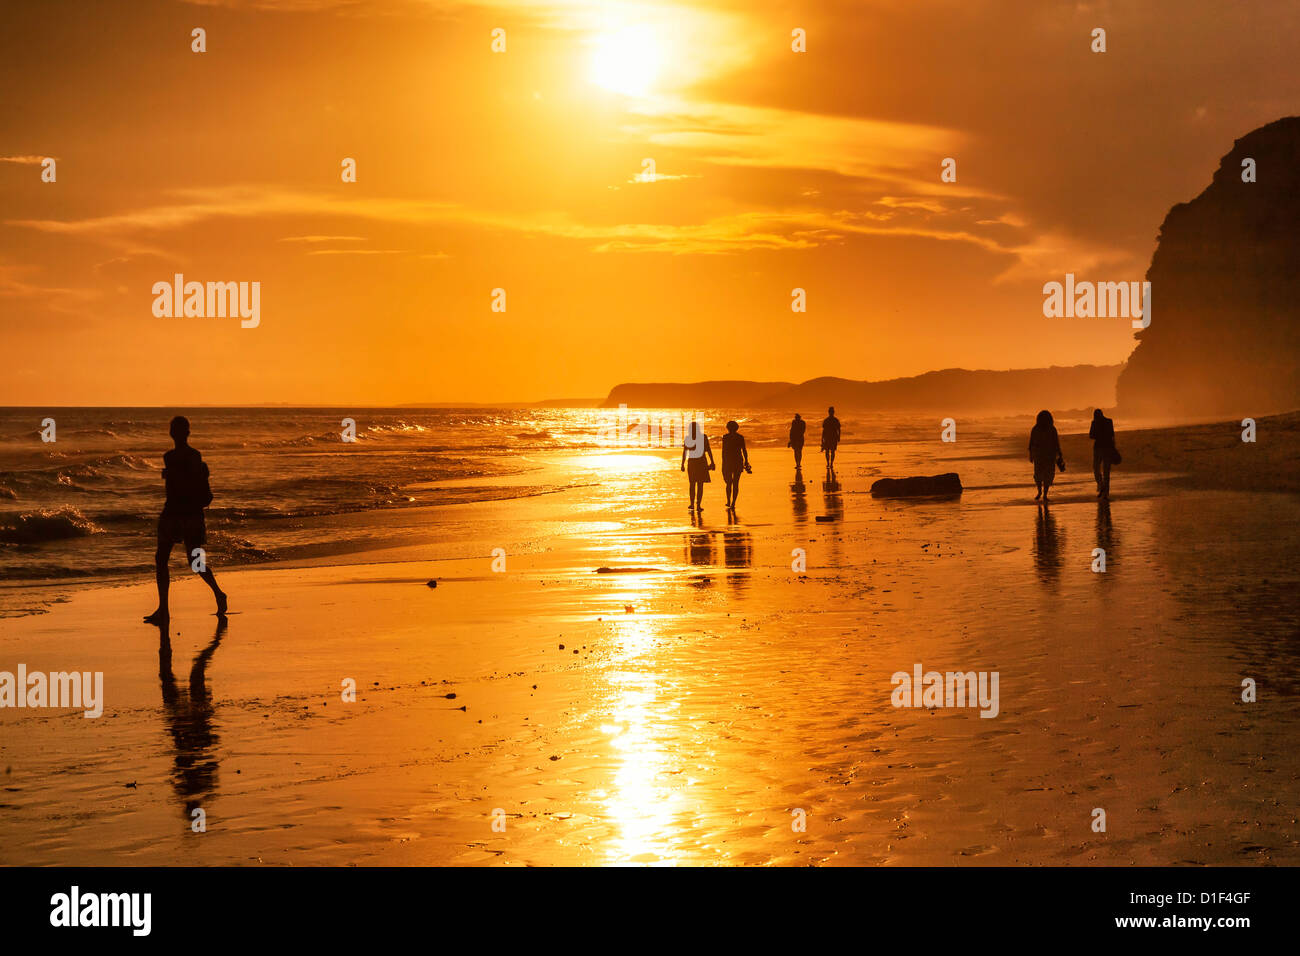 People at sunset at the beach Praia do Porto de Moss, Algarve, Portugal - Stock Image